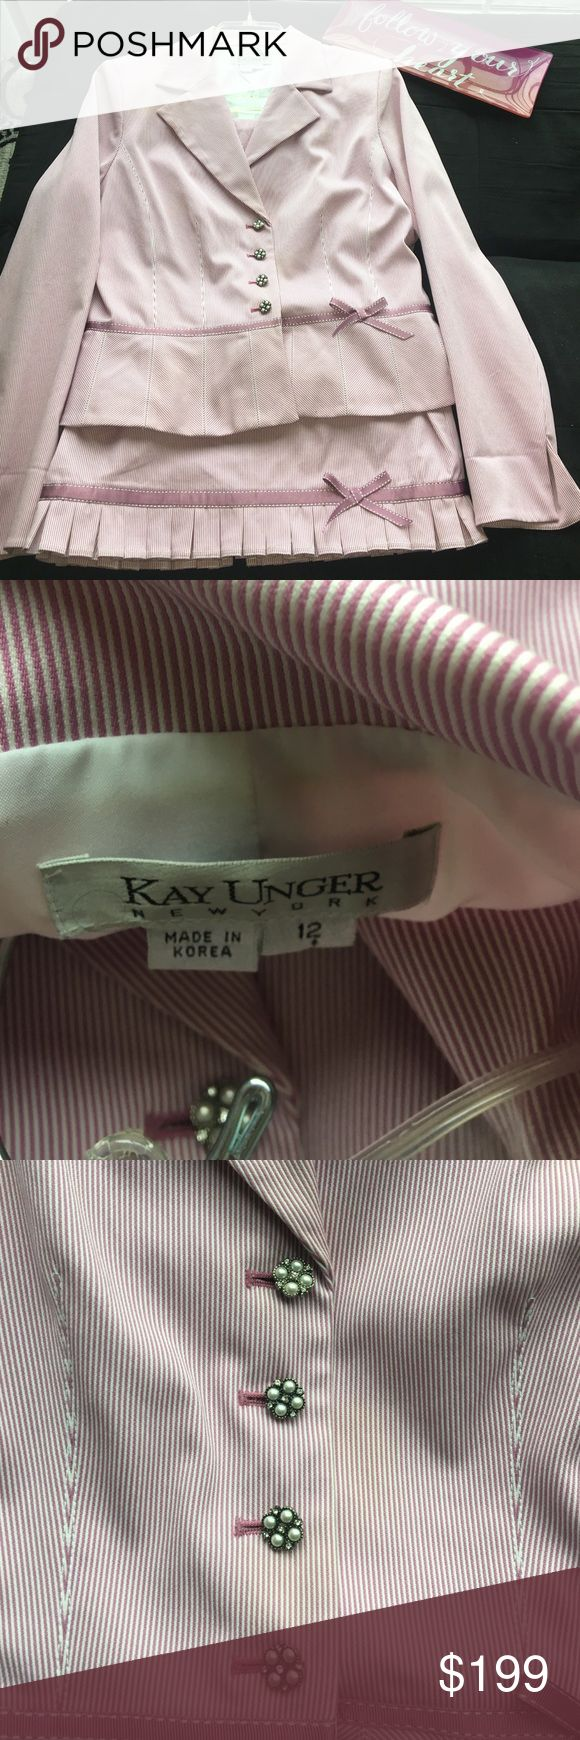 Kay unger suit set Worn to attend two  weddings still looks new great lady chic suit. Purchased from Neiman marcus a few years back,  2pc set Kay Unger makes the best suiting Kay Unger Skirts Skirt Sets